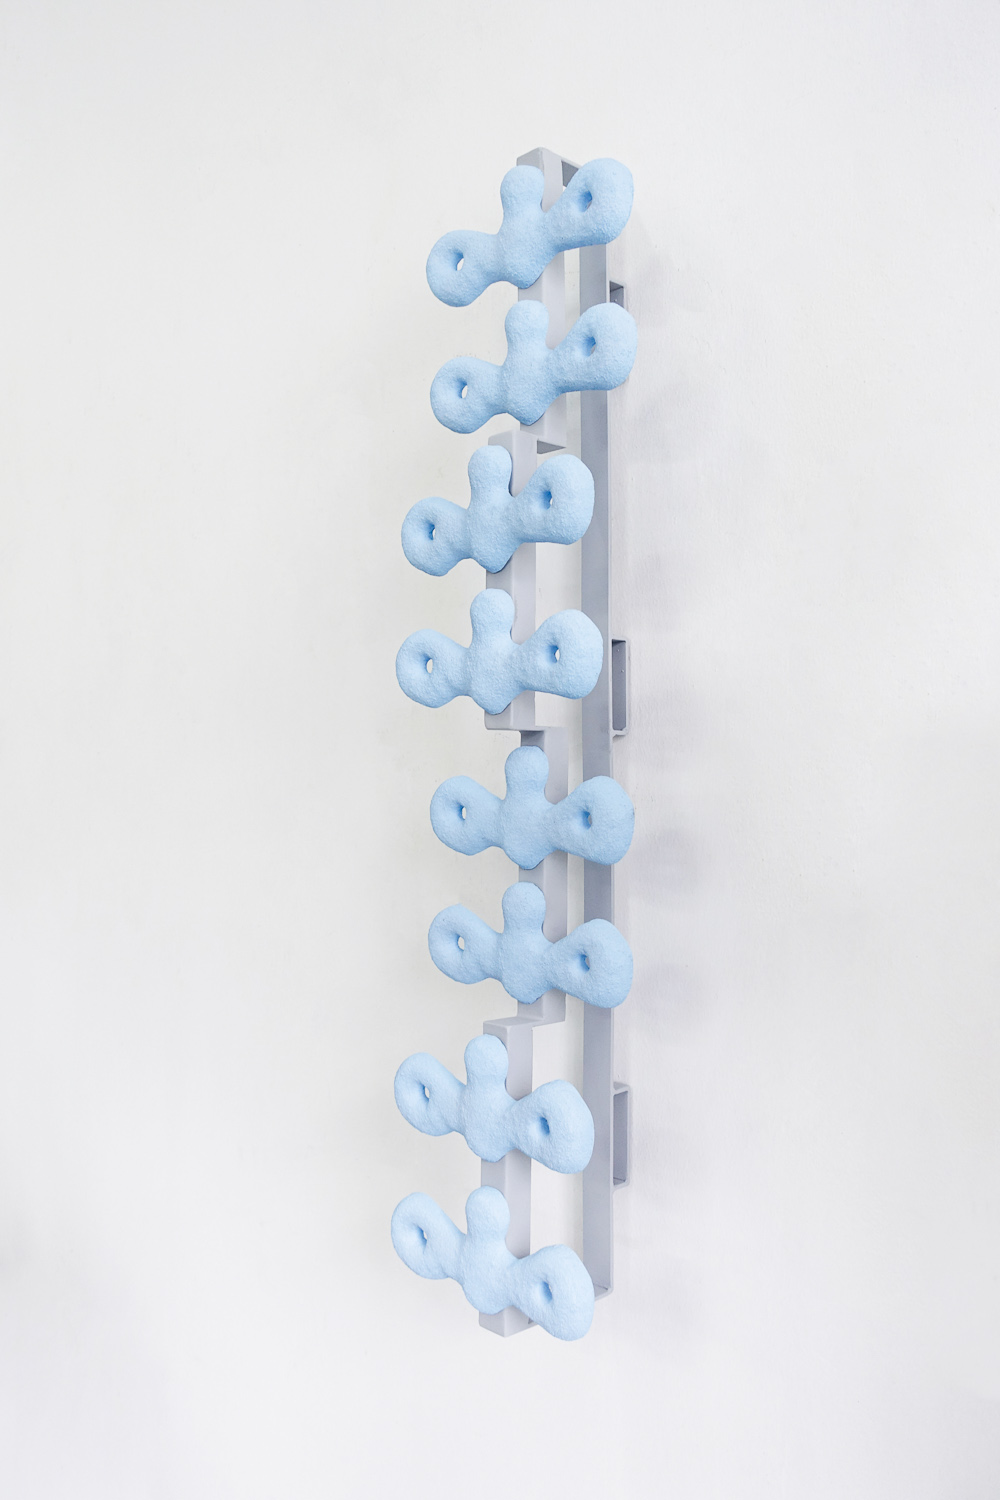 Haffendi Anuar, 'Monument to Integrity IV', 2019, jesmonite casts, washers, nuts, bolts and painted steel, 113 x 28 x 28cm. Image courtesy of Richard Koh Fine Art and the artist.